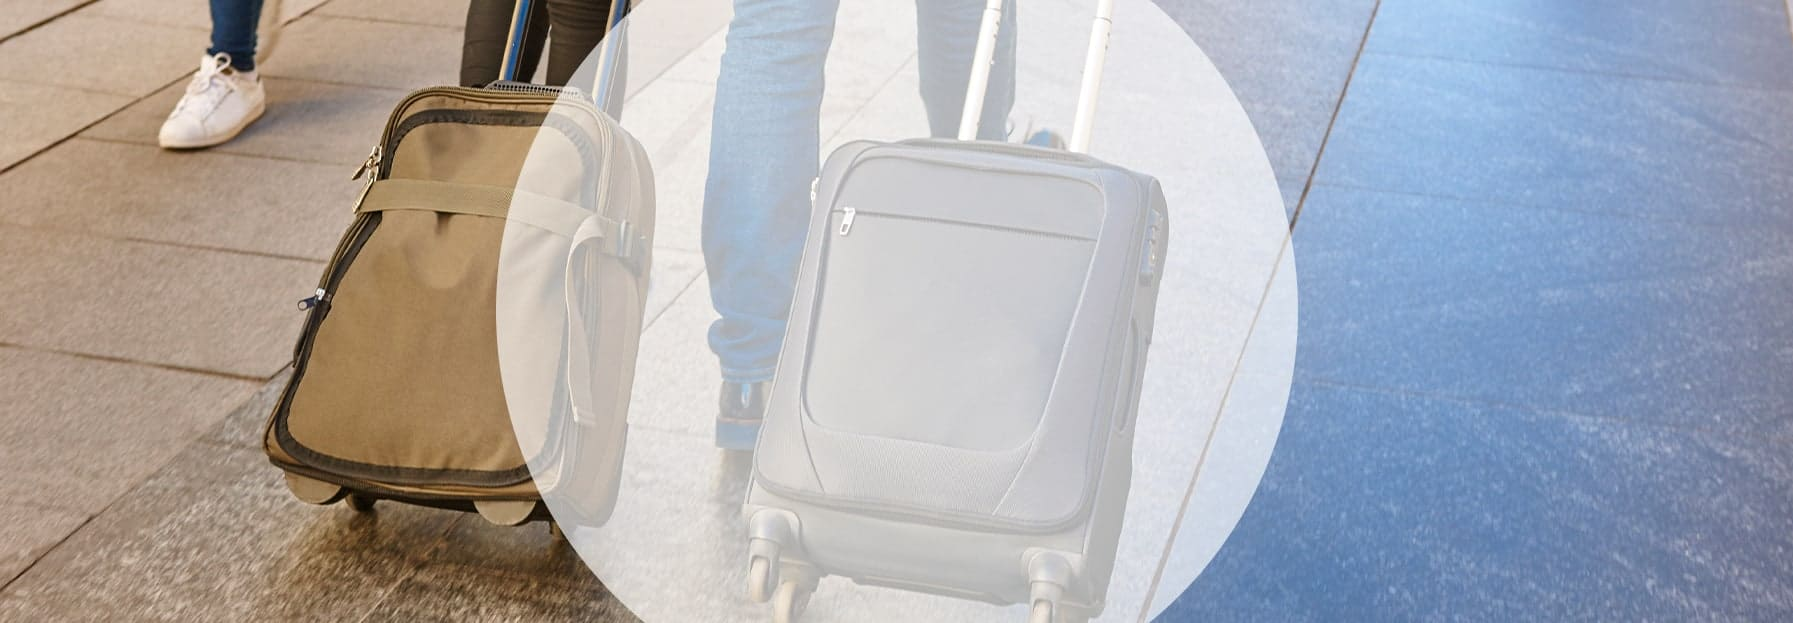 suitcases at an airport - tourism & leisure